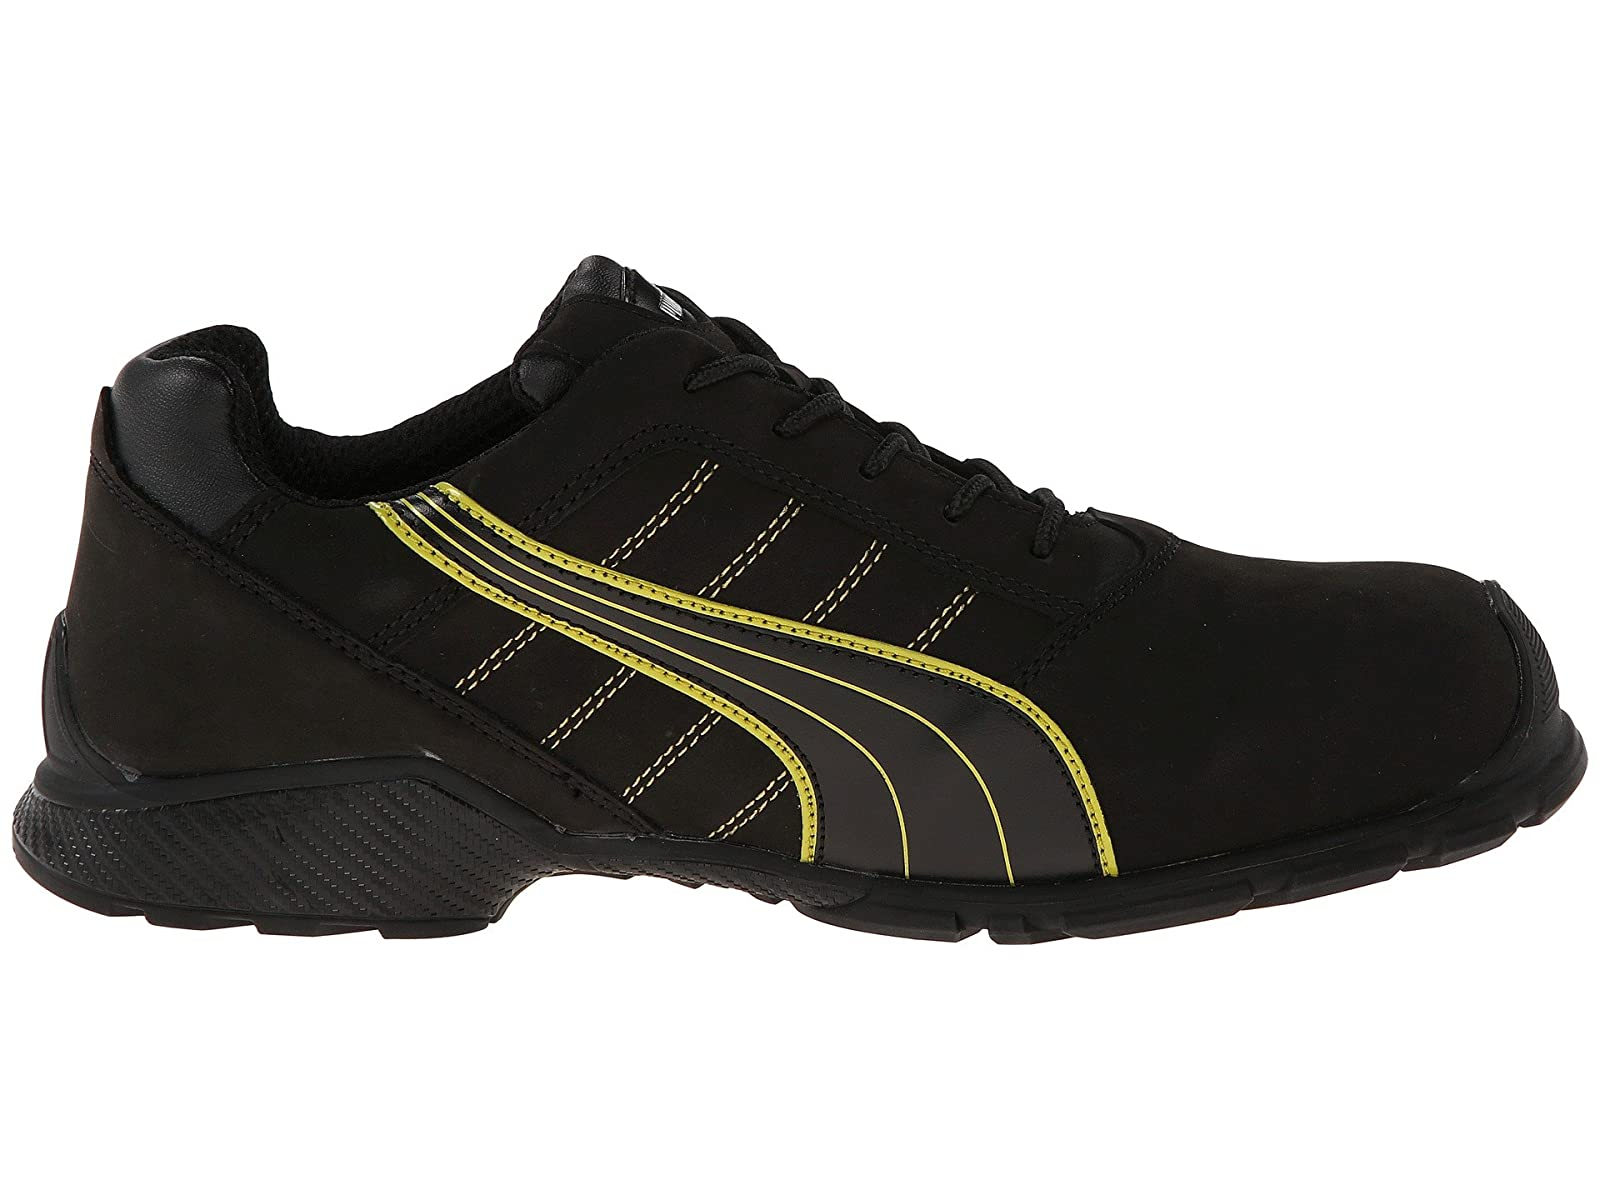 Man-039-s-Sneakers-amp-Athletic-Shoes-PUMA-Safety-Metro-Amsterdam-SD thumbnail 7